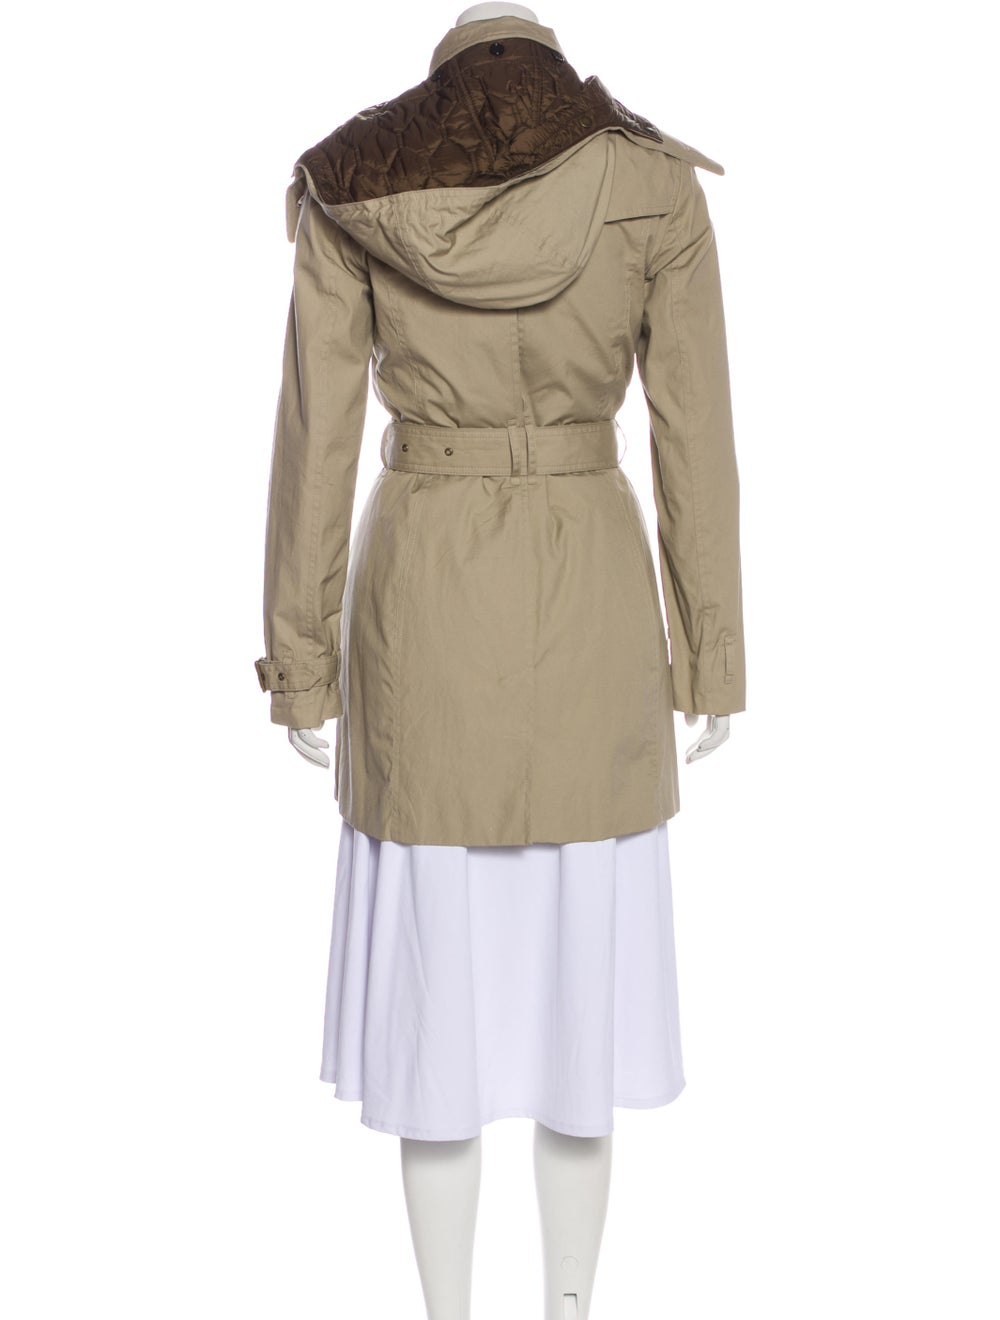 Burberry Brit Hooded Trench Coat Beige - image 3